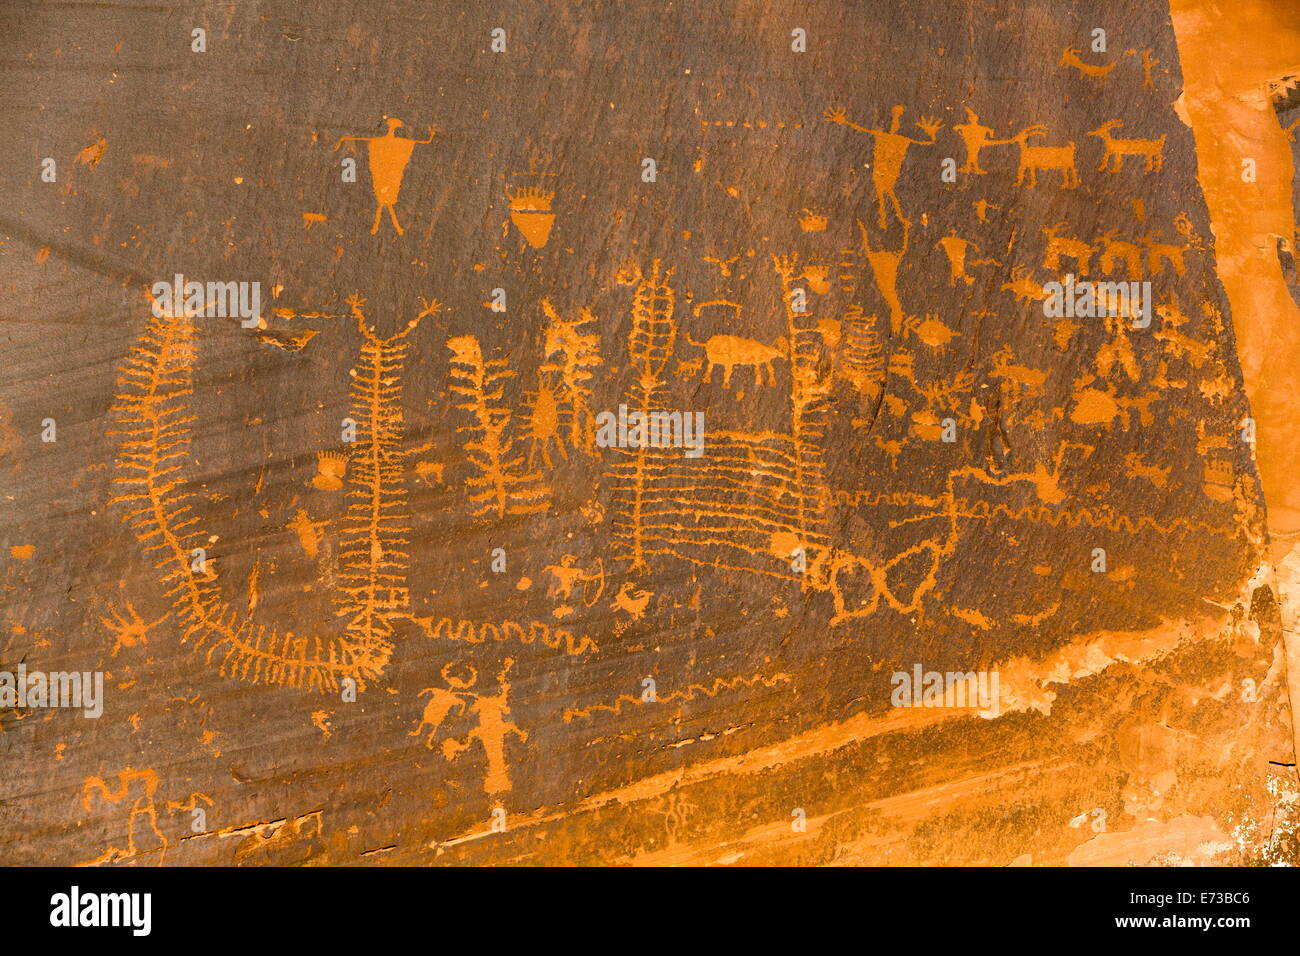 Petroglyphs, ancestral Puebloan, dating from AD 900 to AD 1250, Potash Road, near Moab, Utah, United States of America - Stock Image